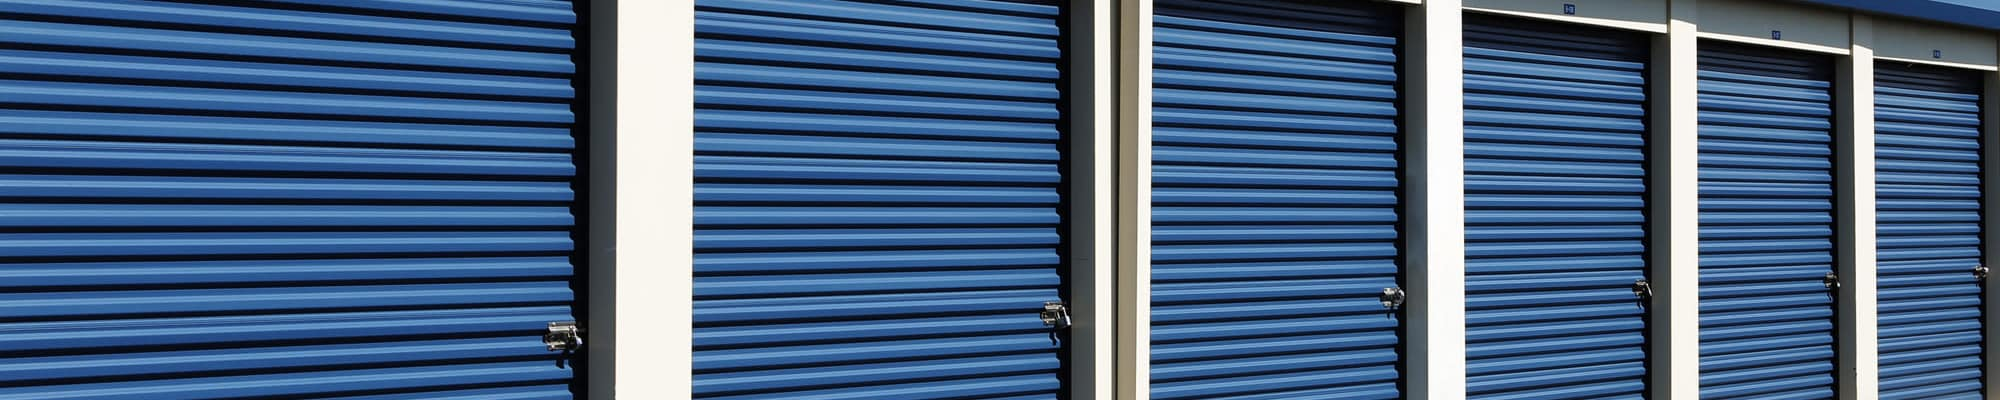 Contact Midgard Self Storage in Greenwood, South Carolina